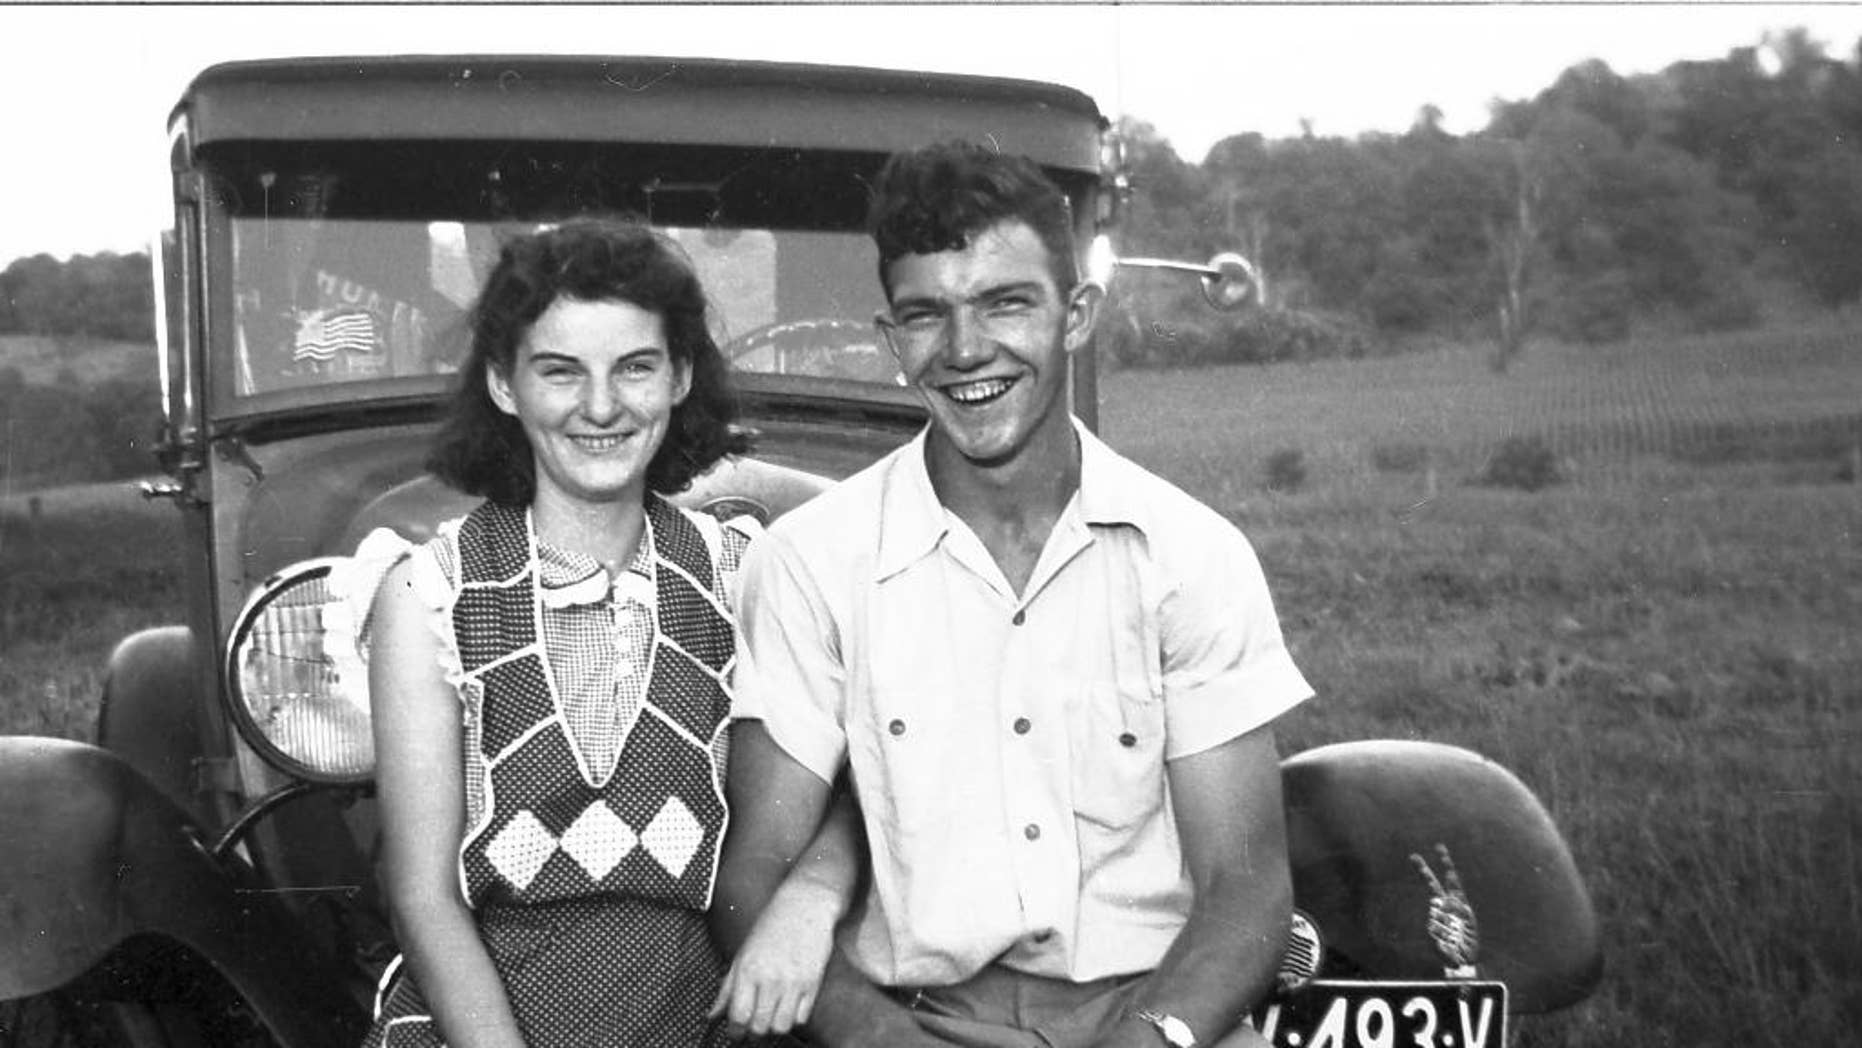 In this September 1941 photo provided by Dick Felumlee, Kenneth and Helen Felumlee pose for a photo nearly three years before their marriage in February 1944. The Felumlees, who celebrated their 70th wedding anniversary in February, died 15 hours apart from each other last week. (AP Photo/Felumlee family)